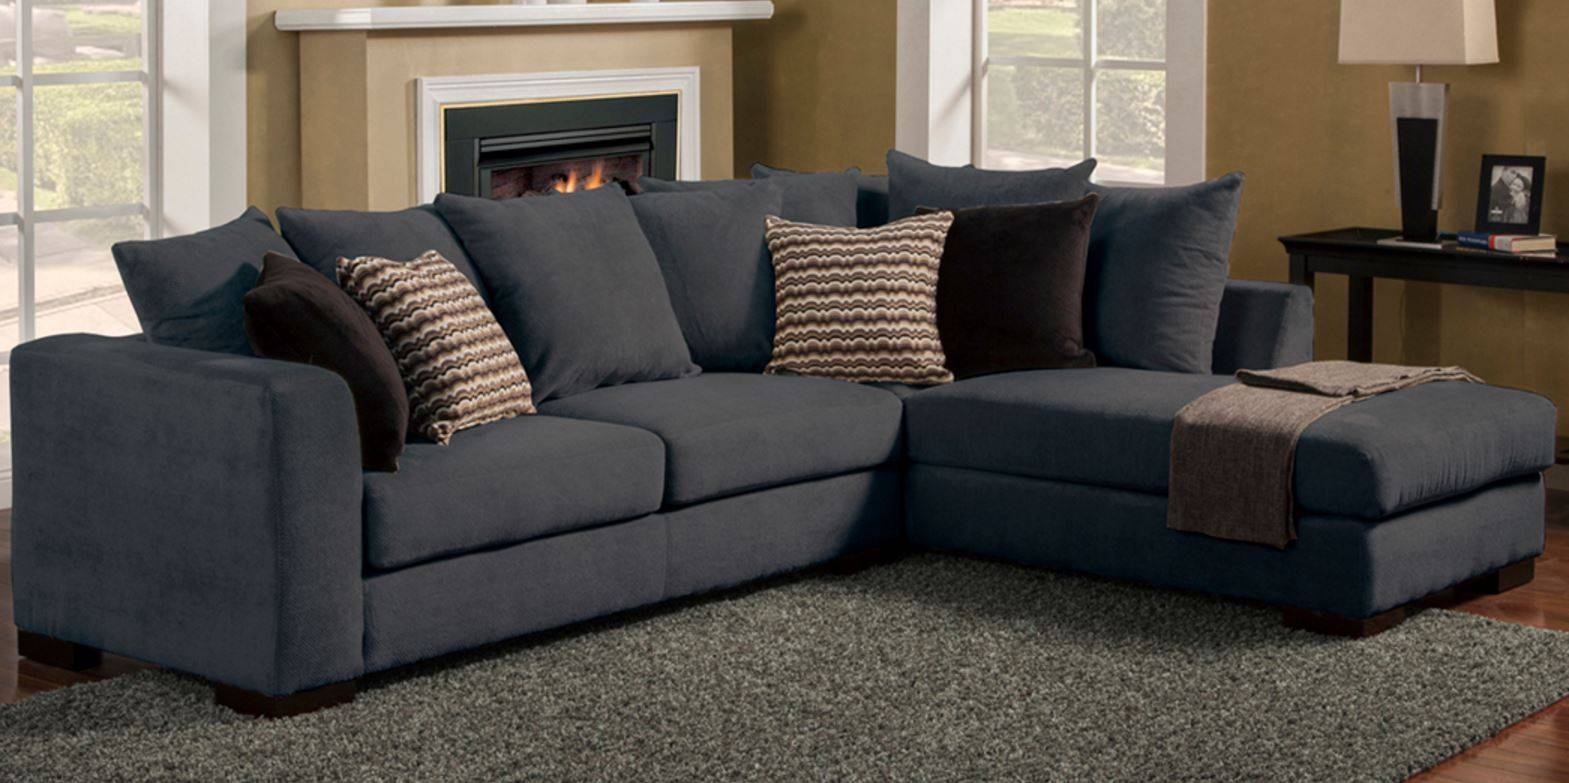 grey upholstered deep sectional sofa with wicket rattan intended for deep cushioned sofas